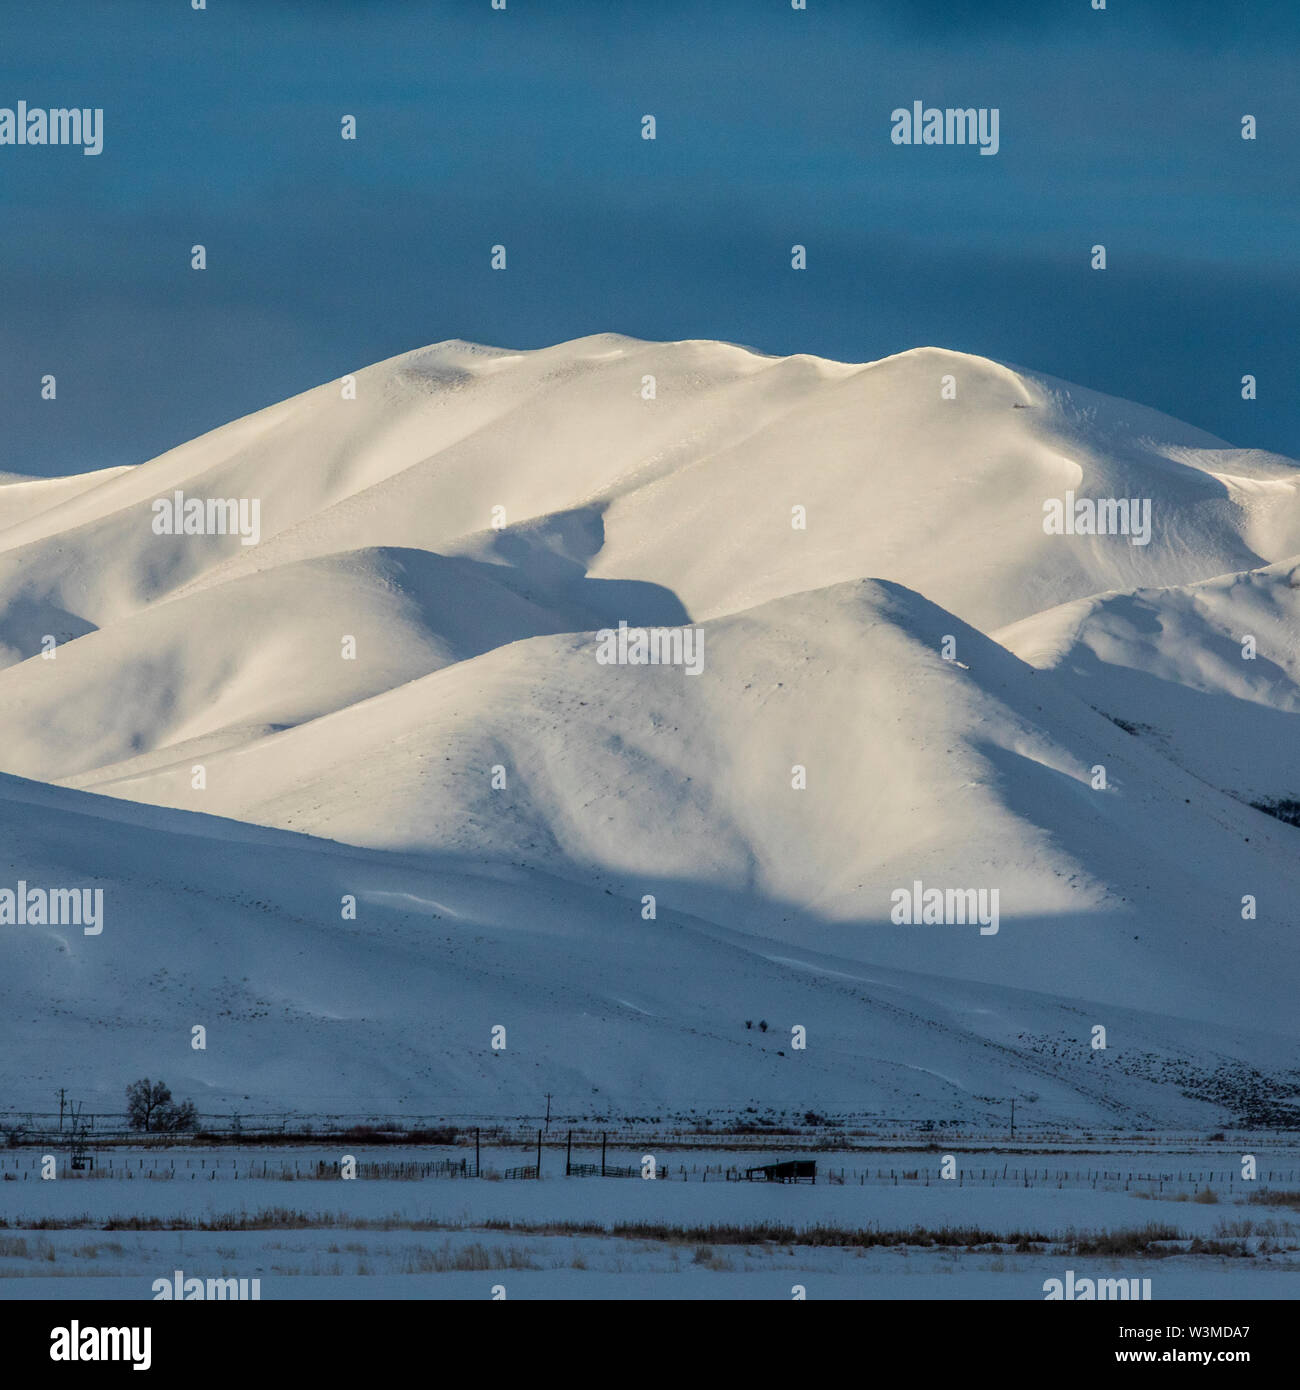 Snow capped mountain in Picabo, Idaho - Stock Image